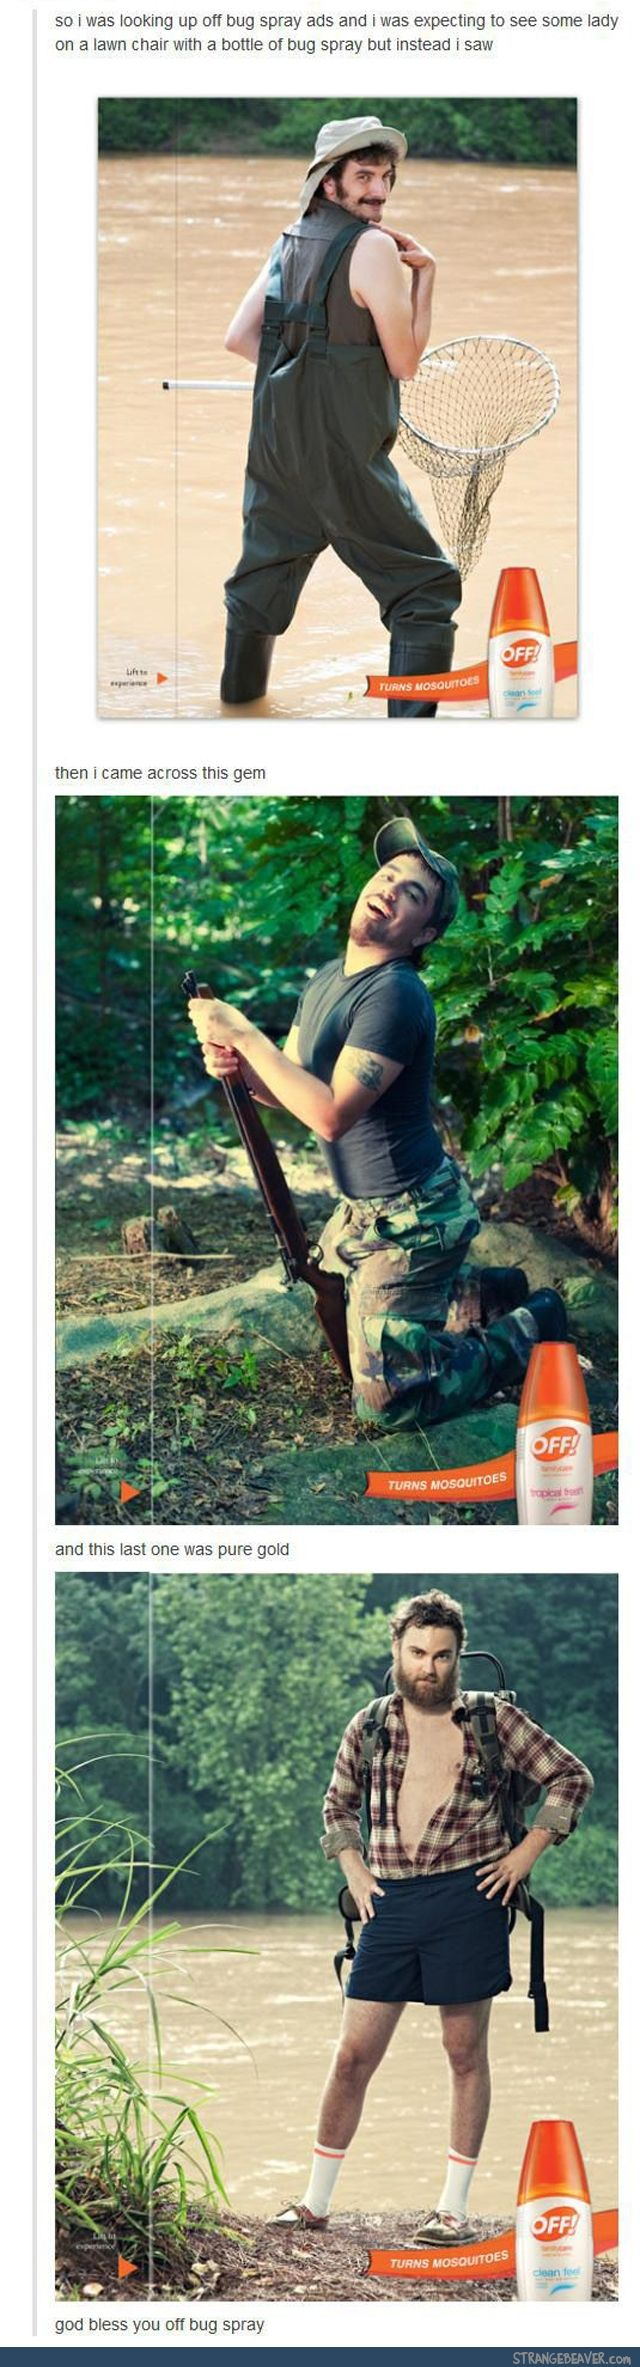 Bug Spray Ad Done Right - funny tumblr post